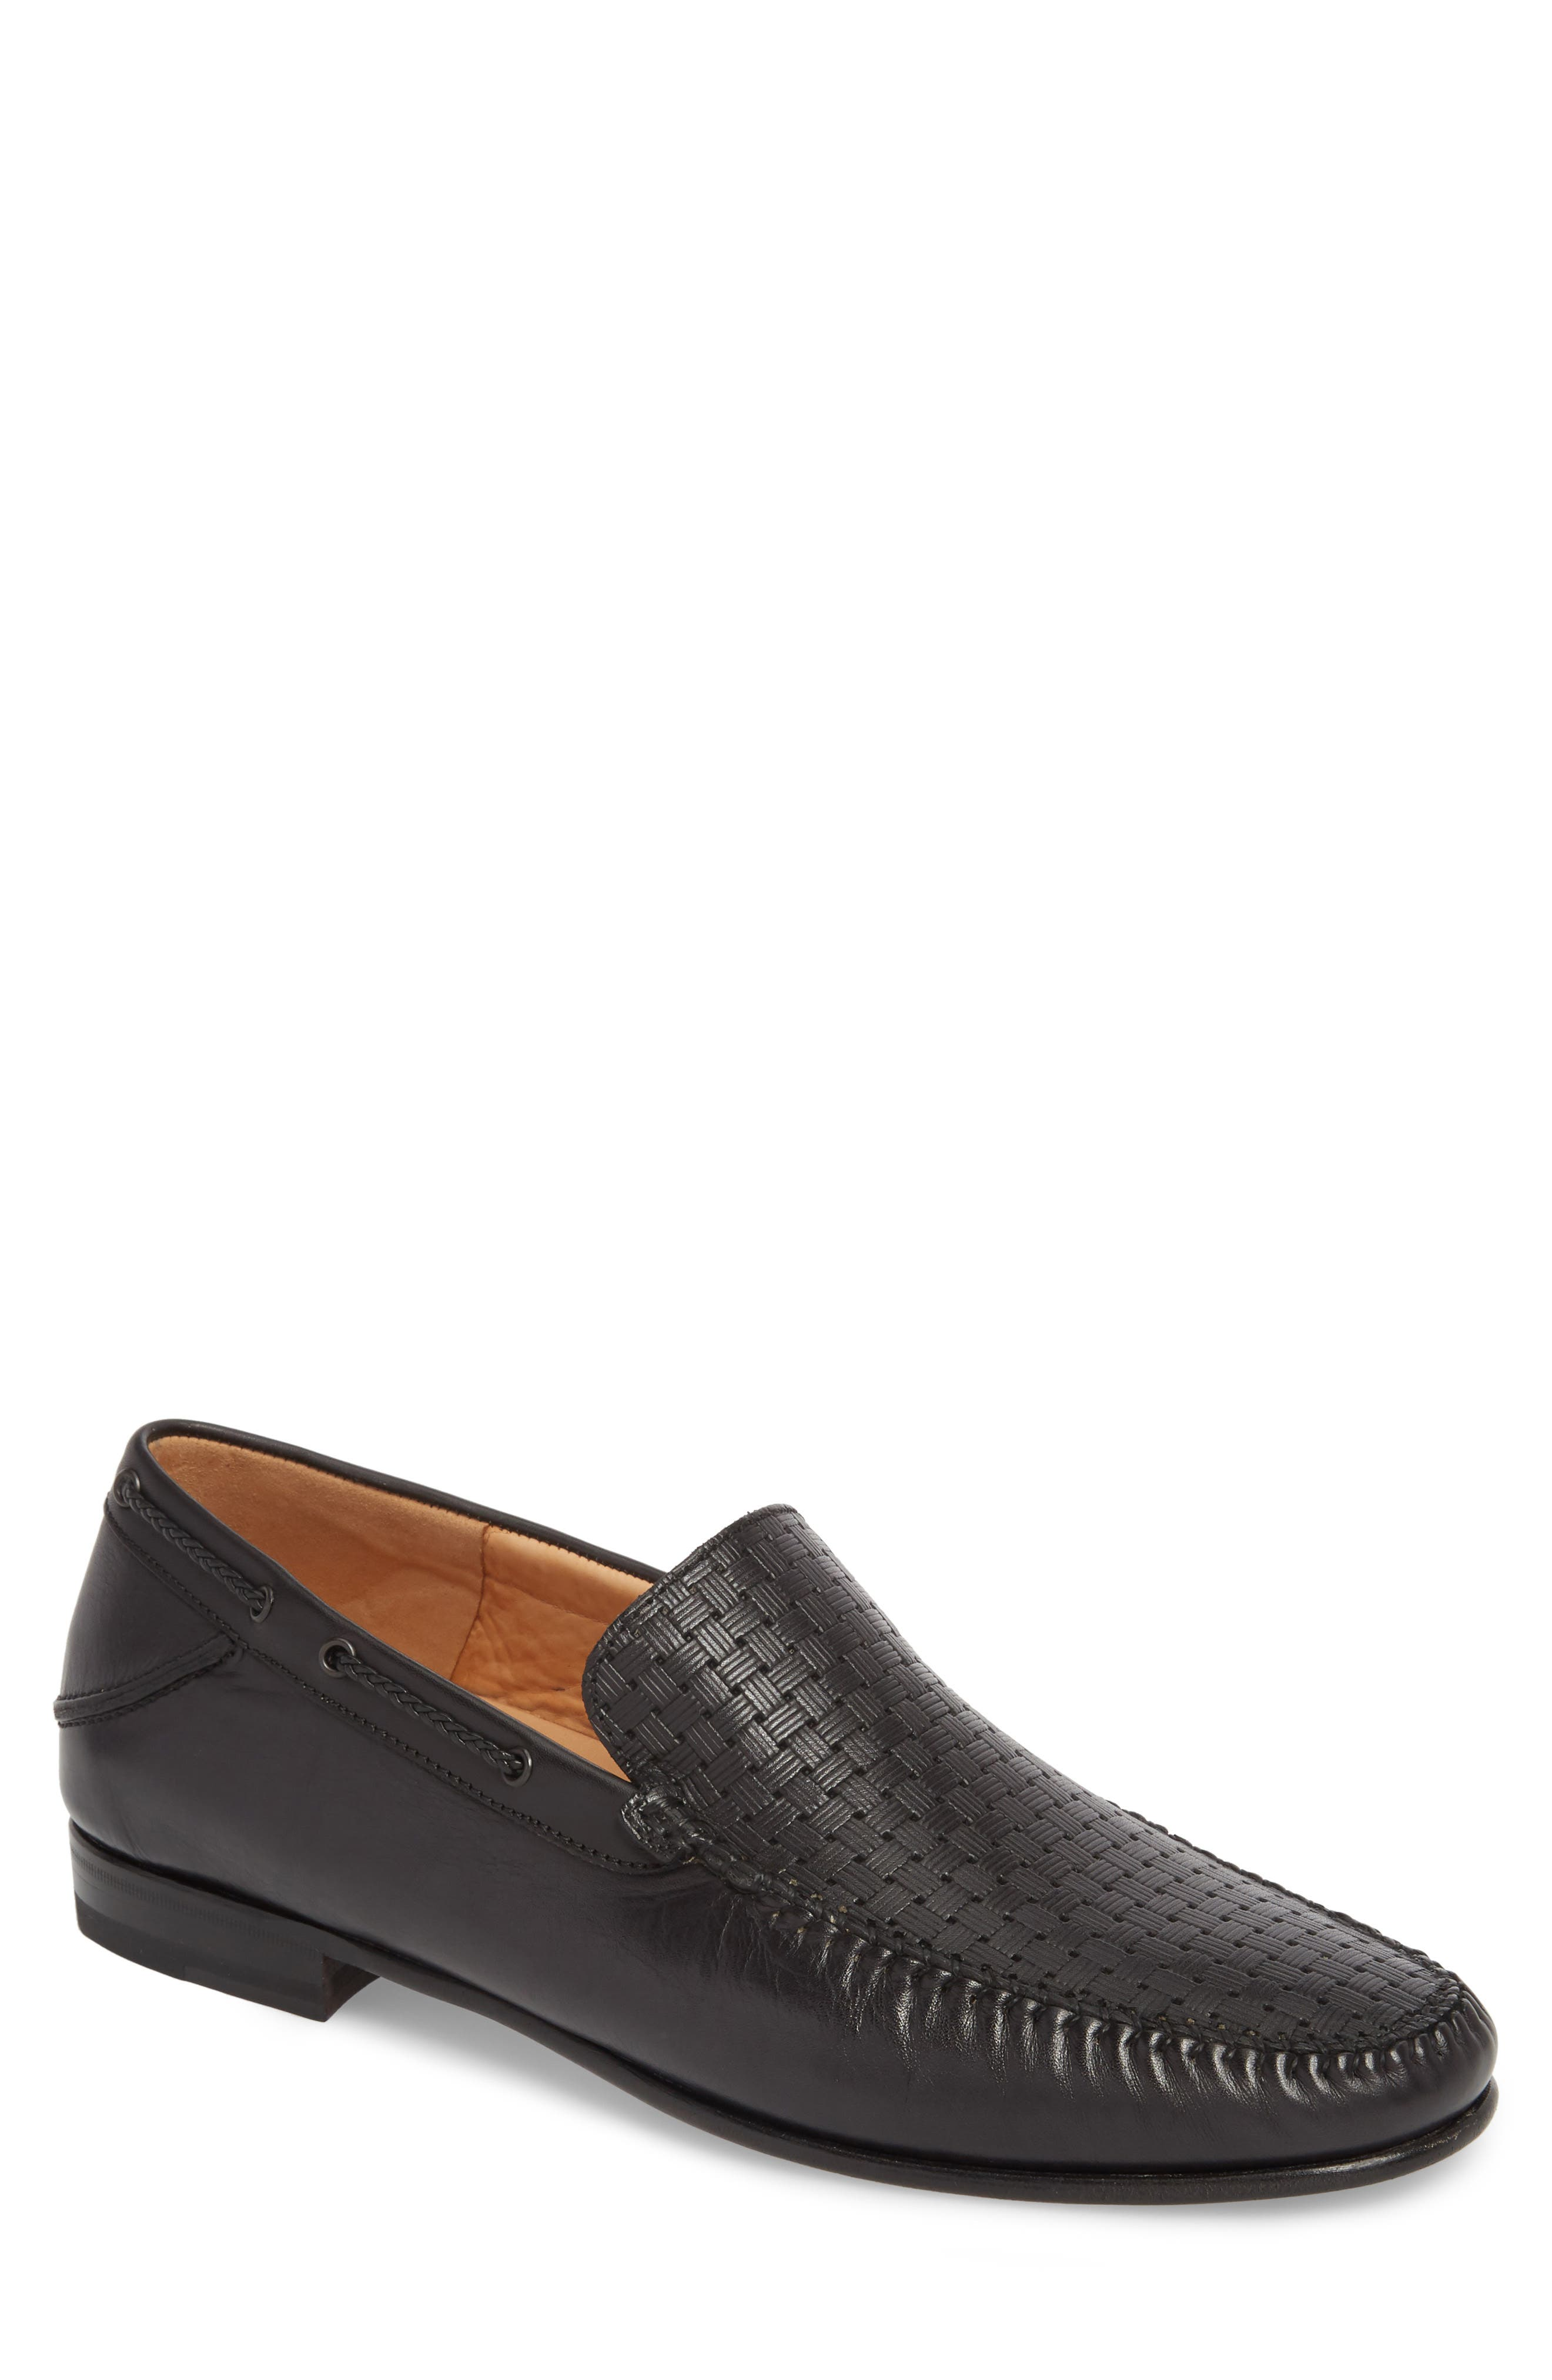 Jano Embossed Moc-Toe Loafer,                             Main thumbnail 1, color,                             BLACK LEATHER